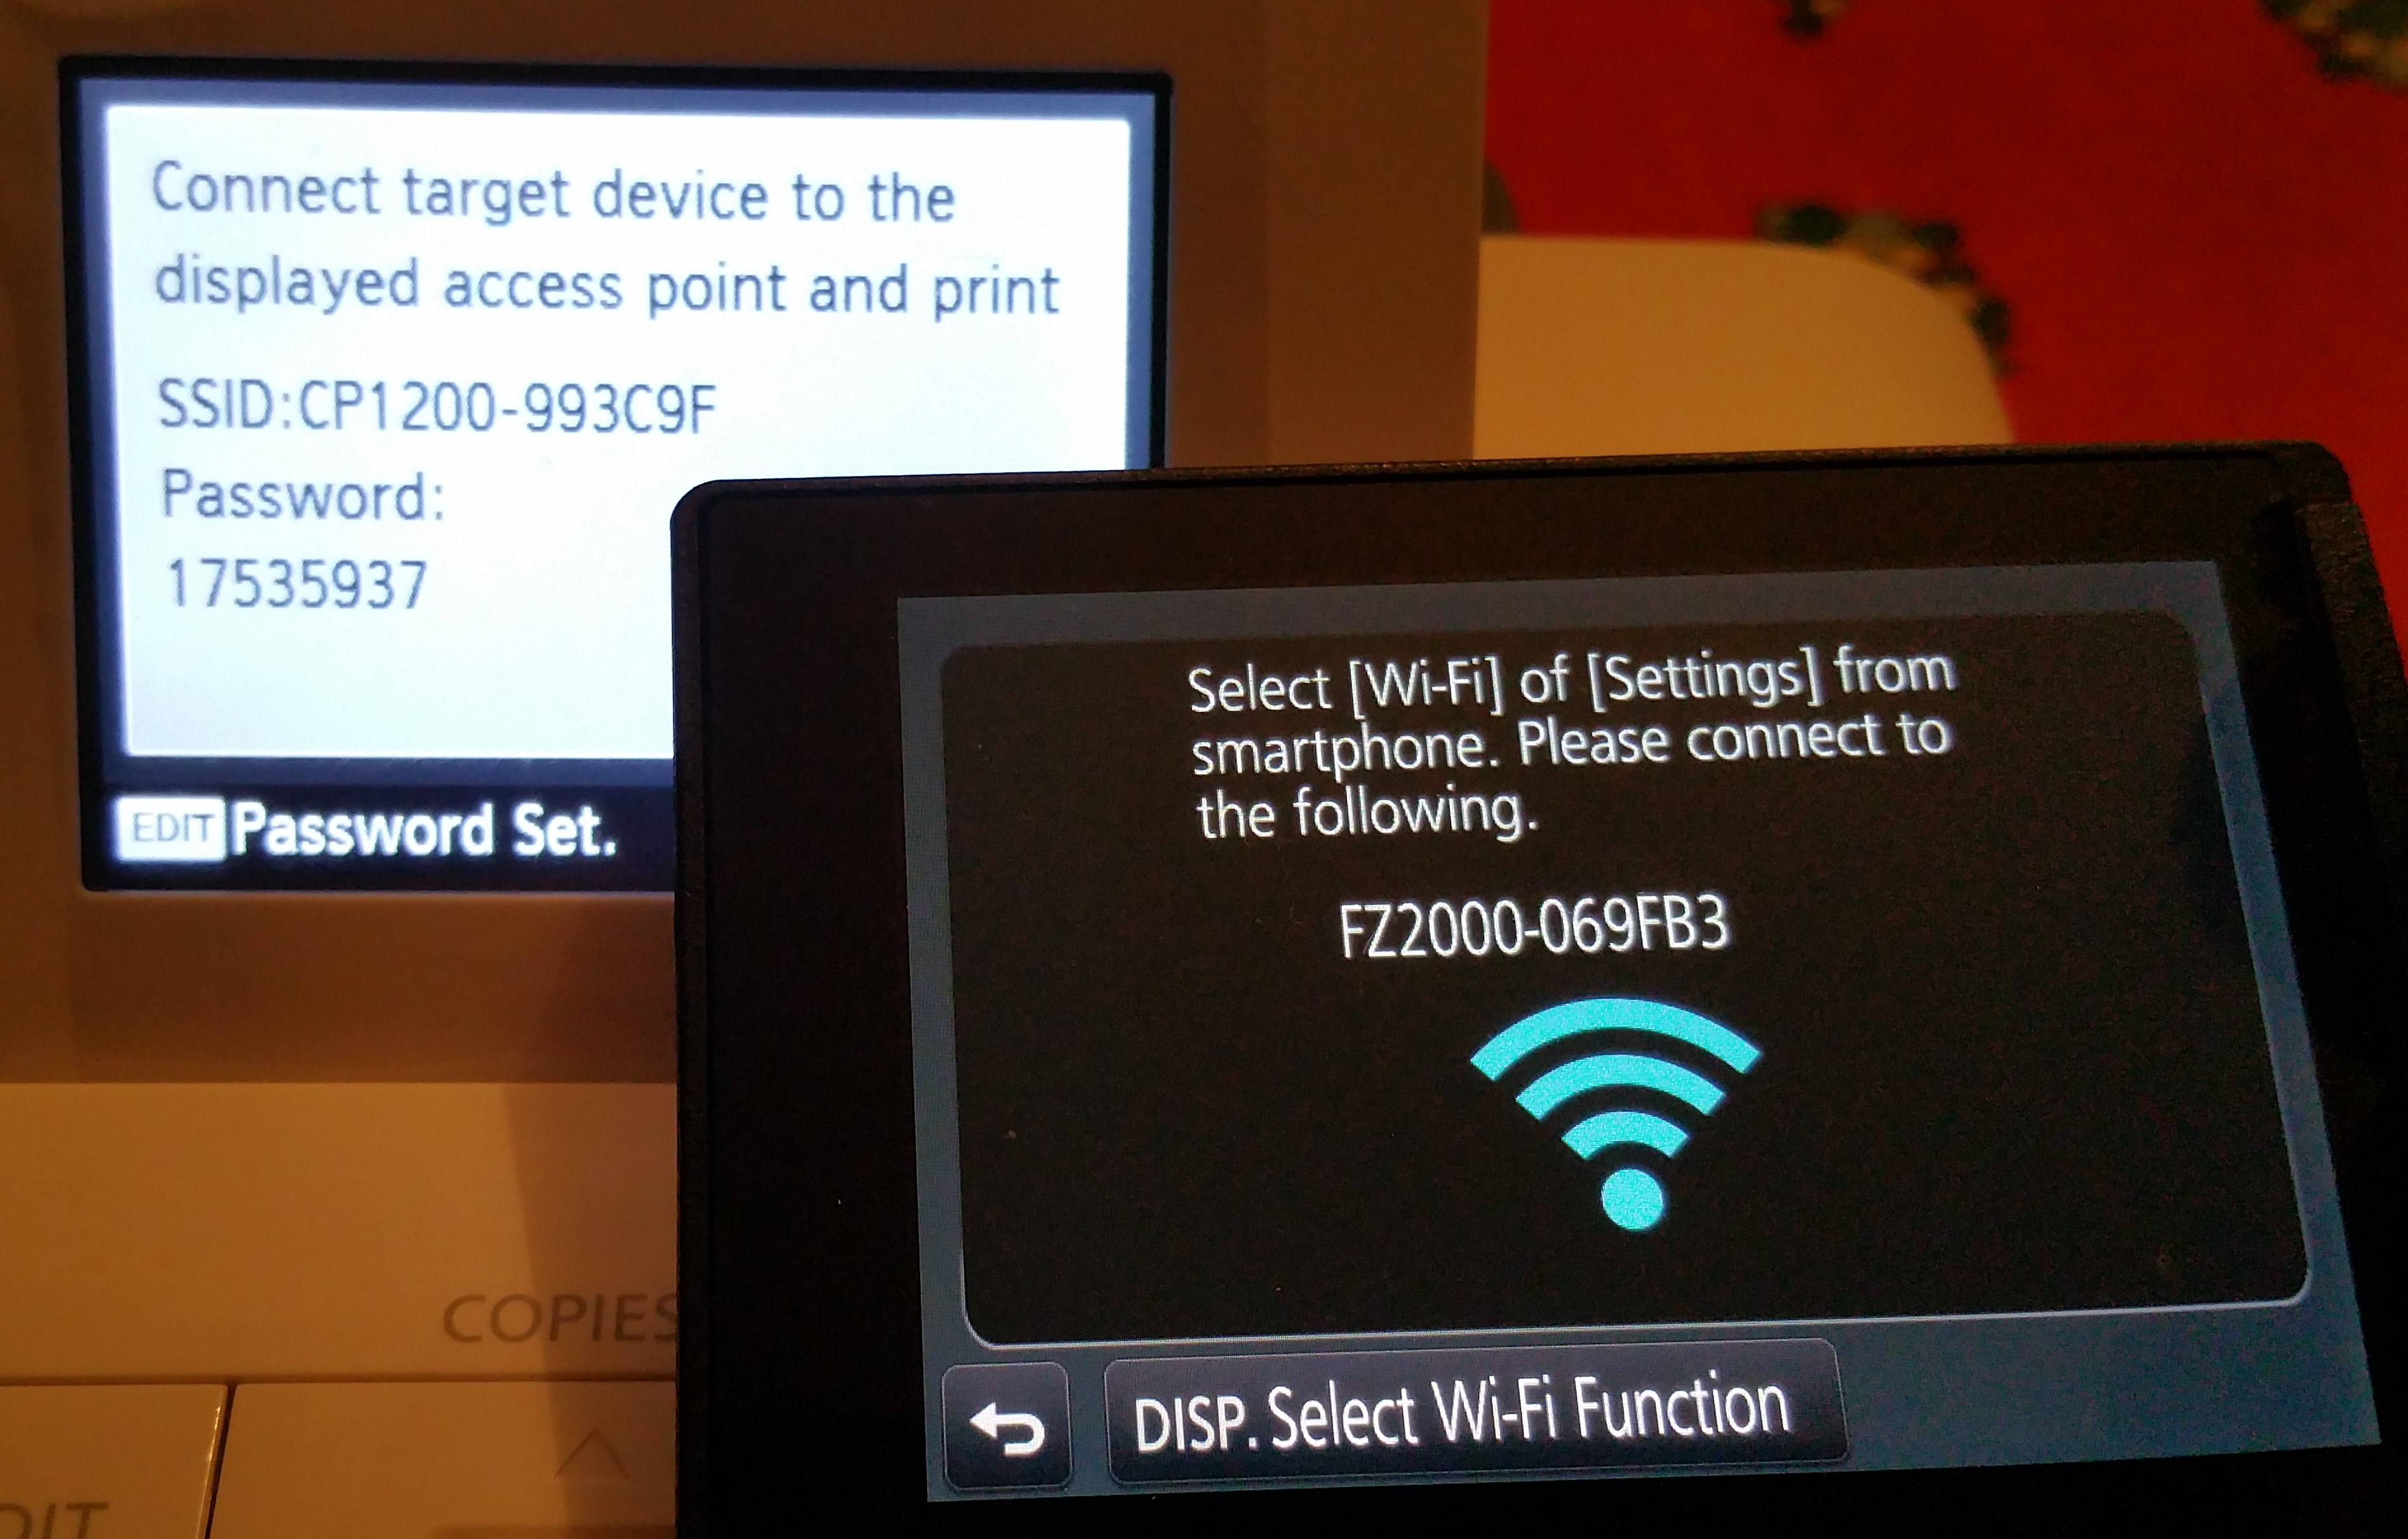 What you can and what you cannot do with FZ2000 Wifi